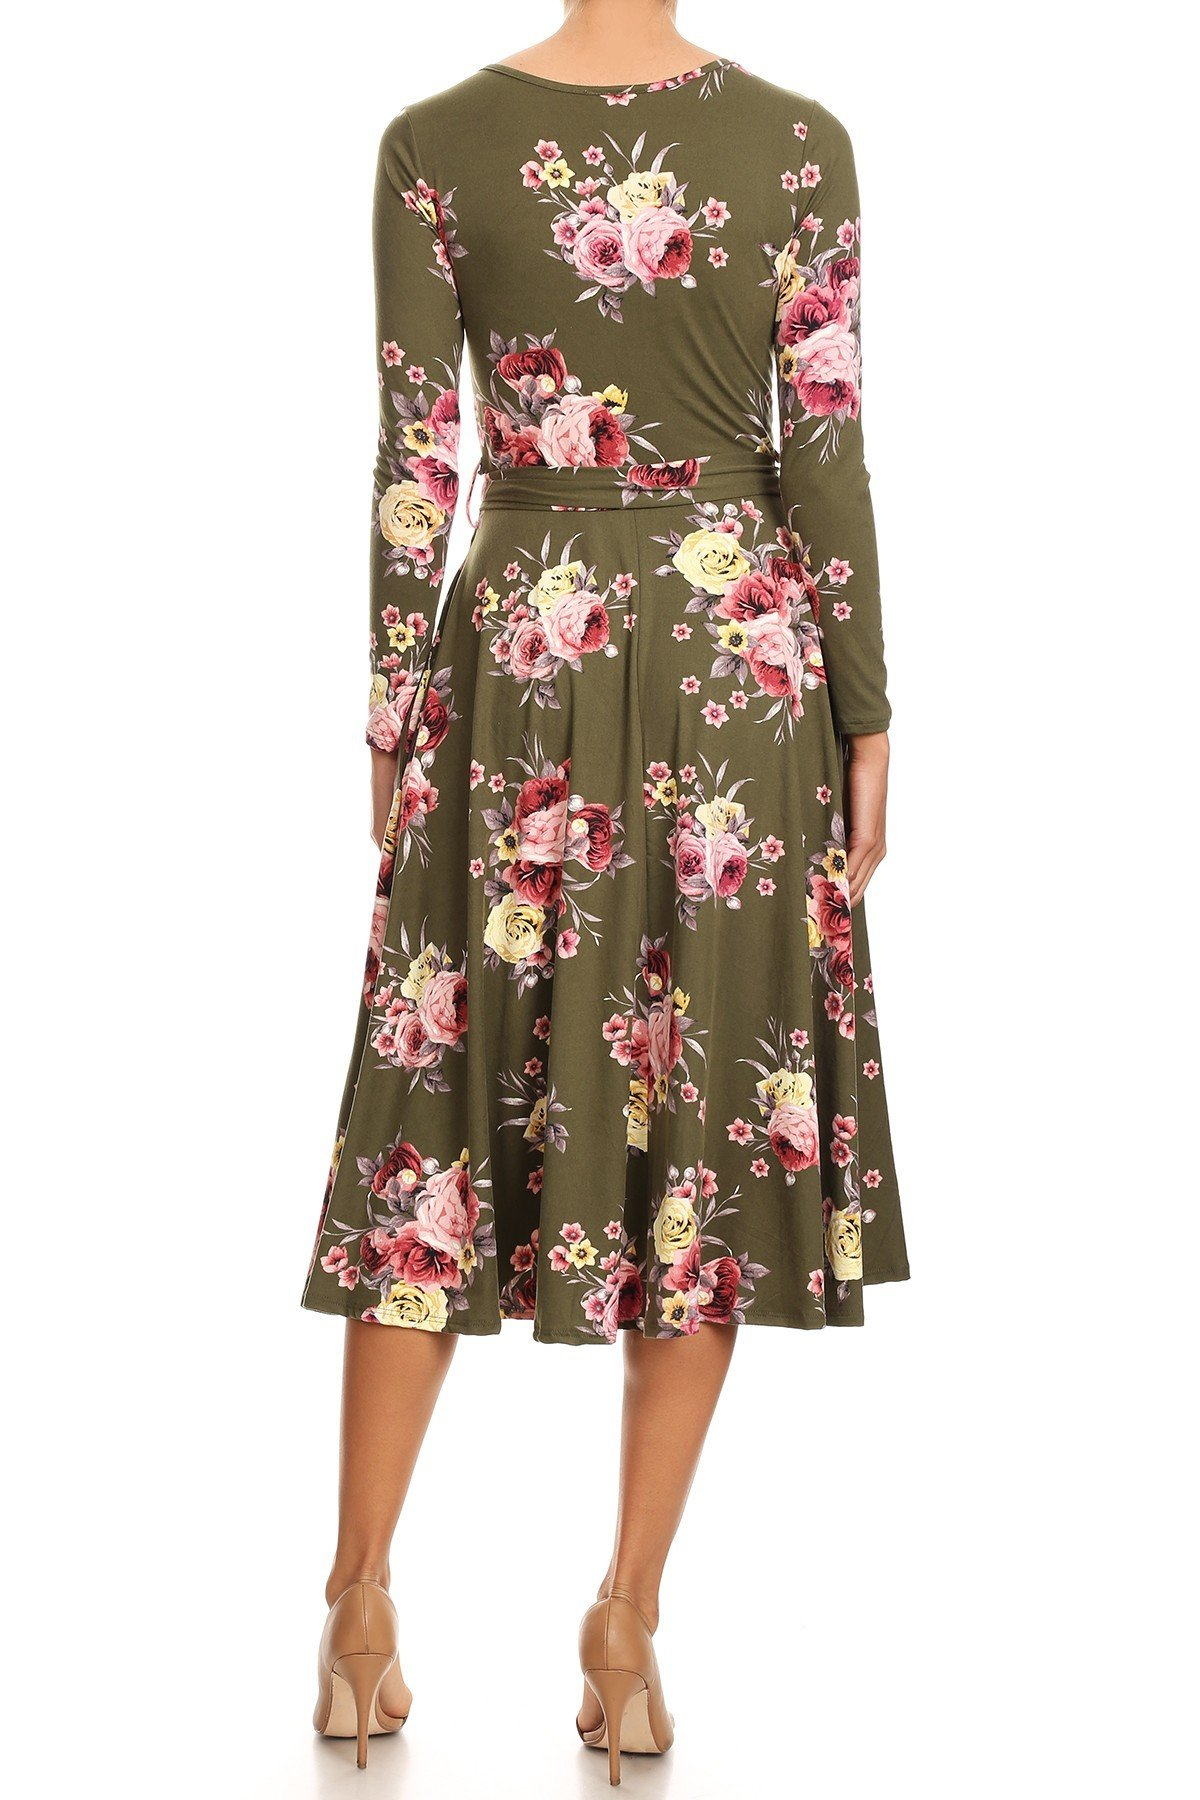 Floral Swing Dress Back View